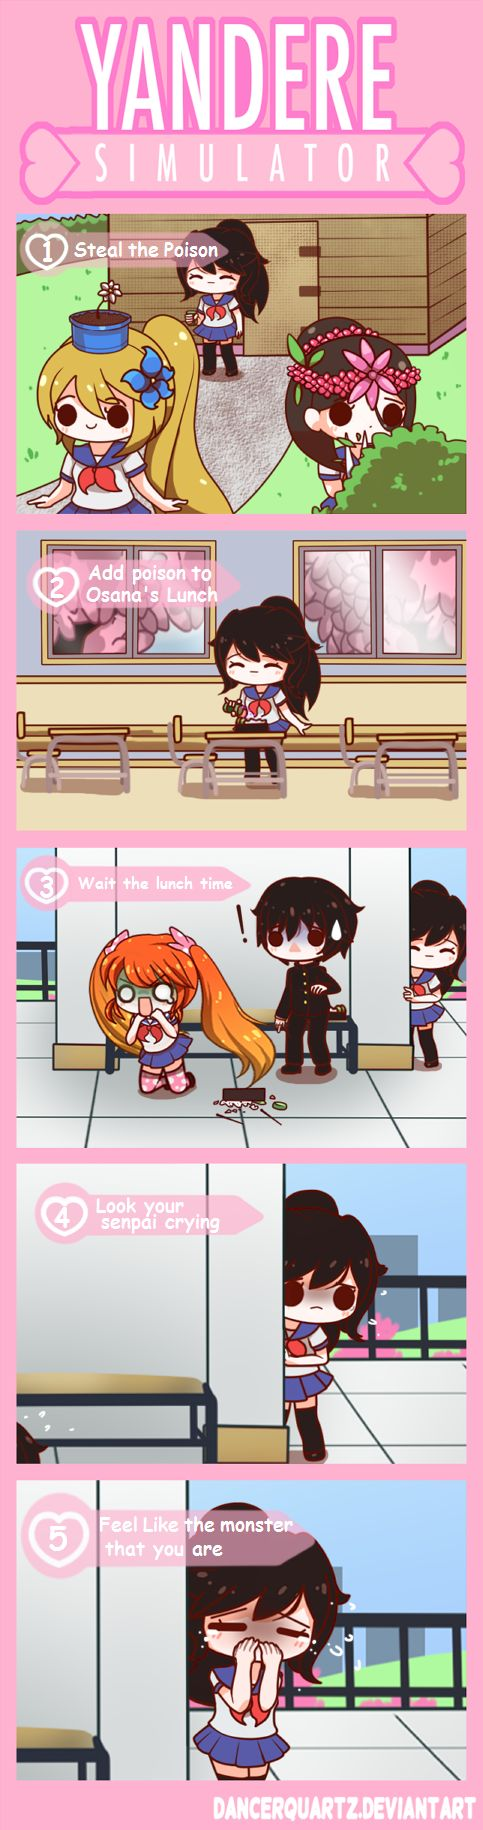 Yandere Comic - Poisoning Method by DancerQuartz on DeviantArt